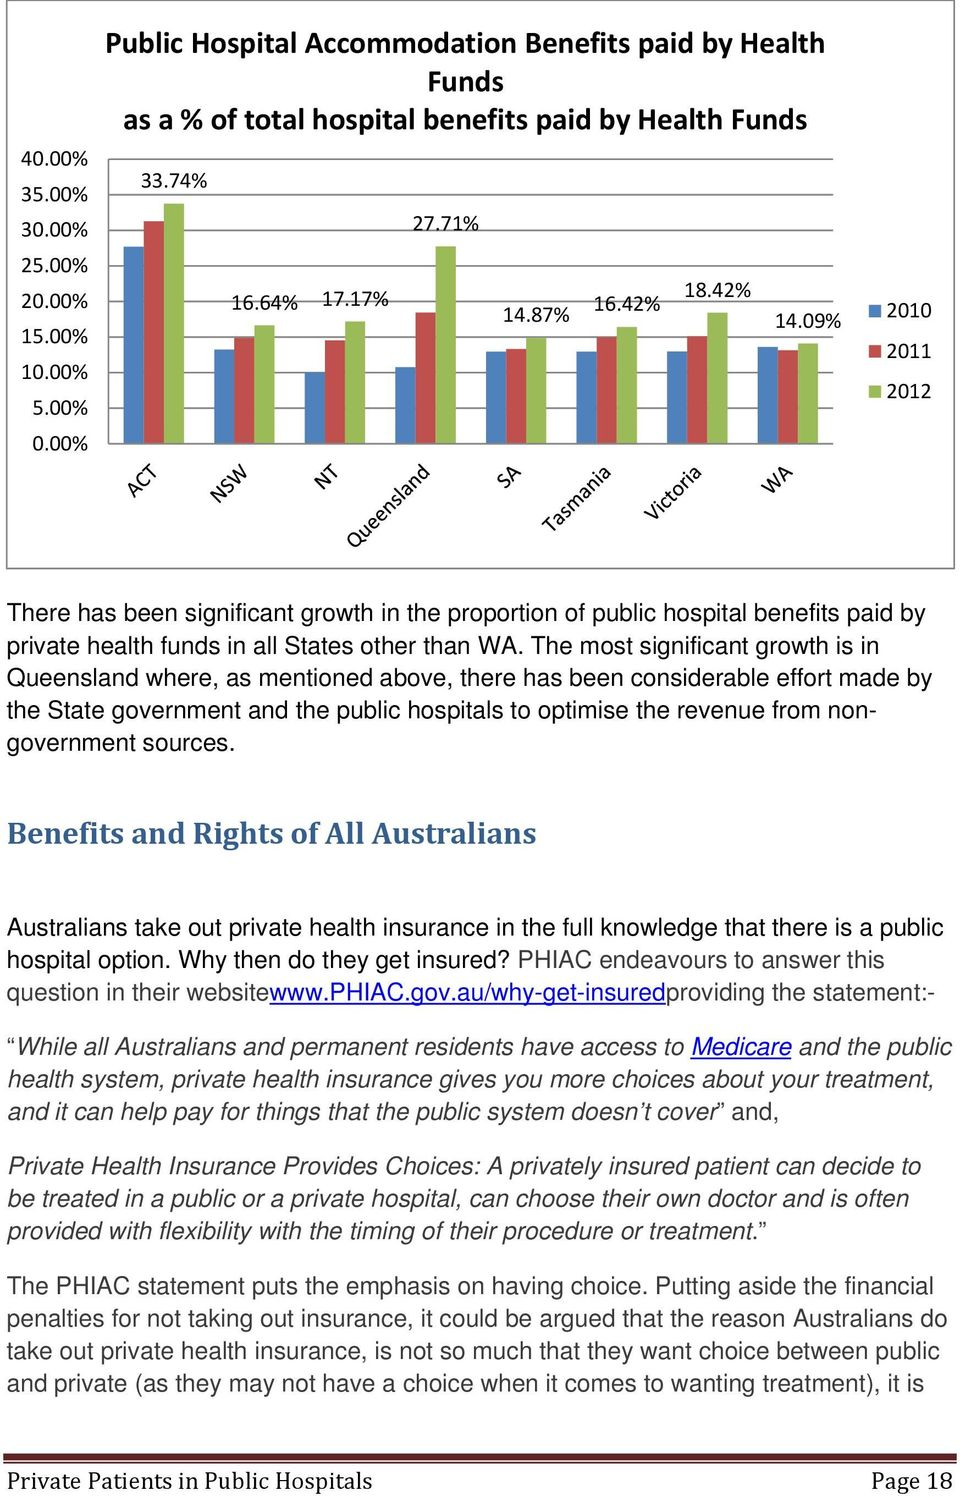 The most significant growth is in Queensland where, as mentioned above, there has been considerable effort made by the State government and the public hospitals to optimise the revenue from